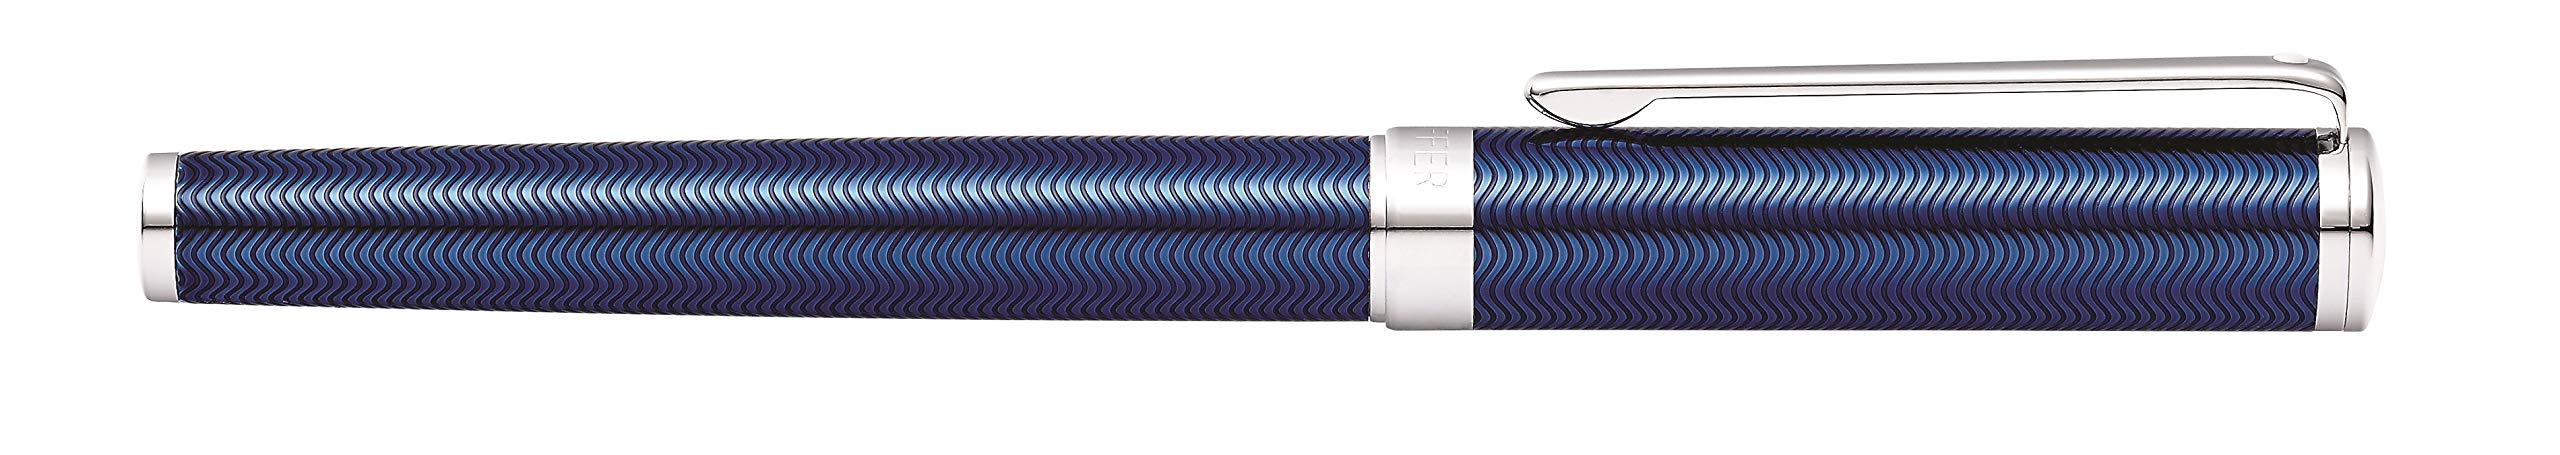 Sheaffer Intensity Engraved Translucent Blue Rollerball Pen with Chrome Cap and Trim by Sheaffer (Image #4)